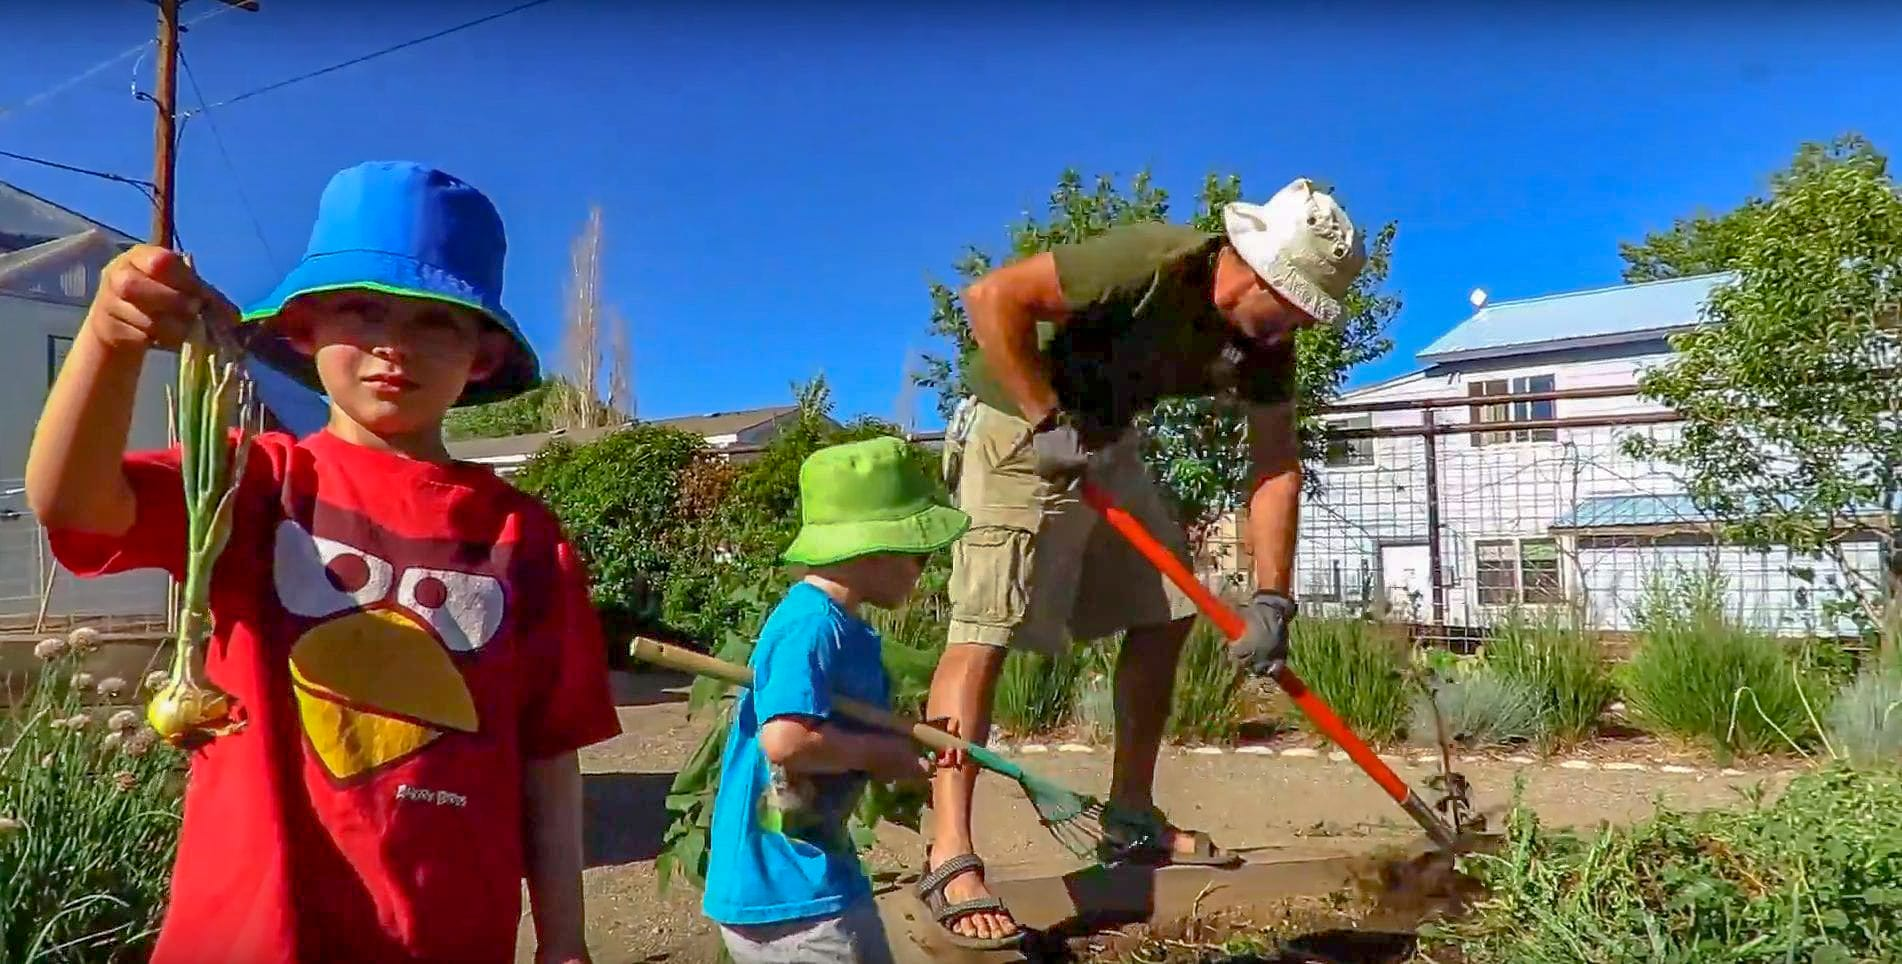 Andrew and his sons working in the community garden next to the greenhouse